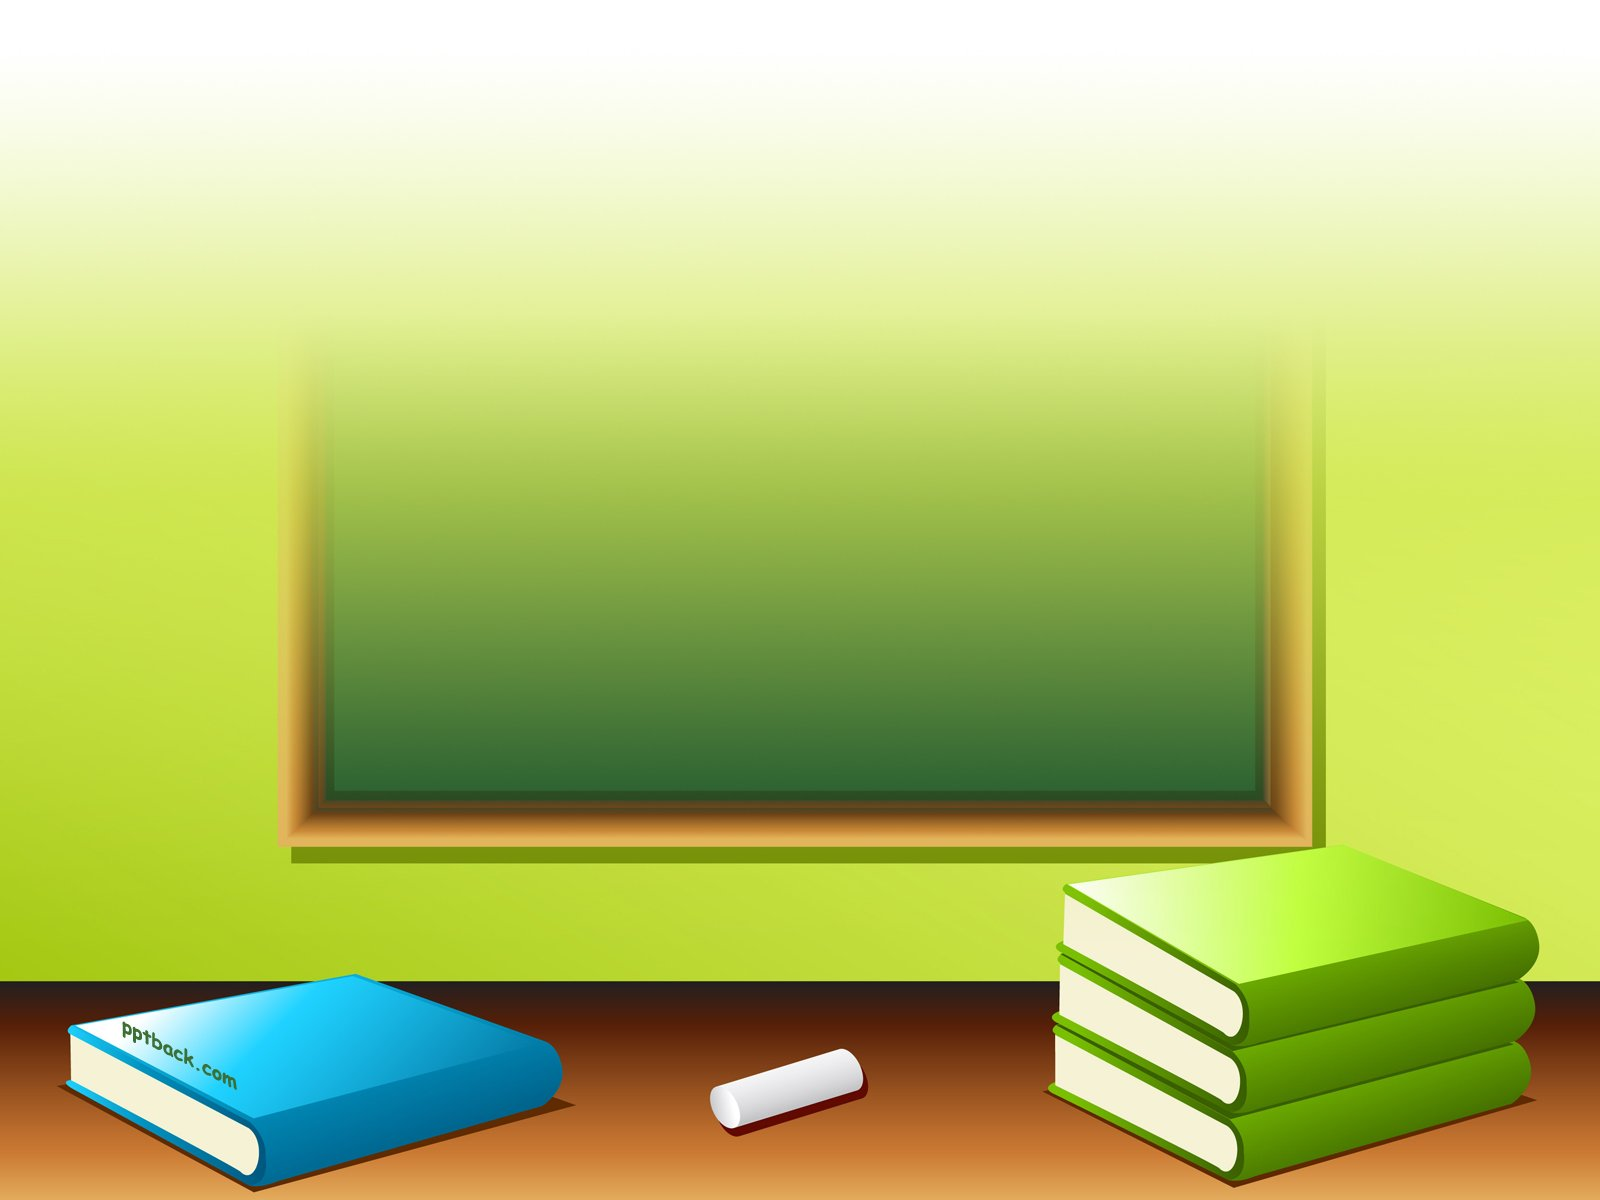 Back to School PPT Background for PowerPoint Presentation Owner Back 1600x1200